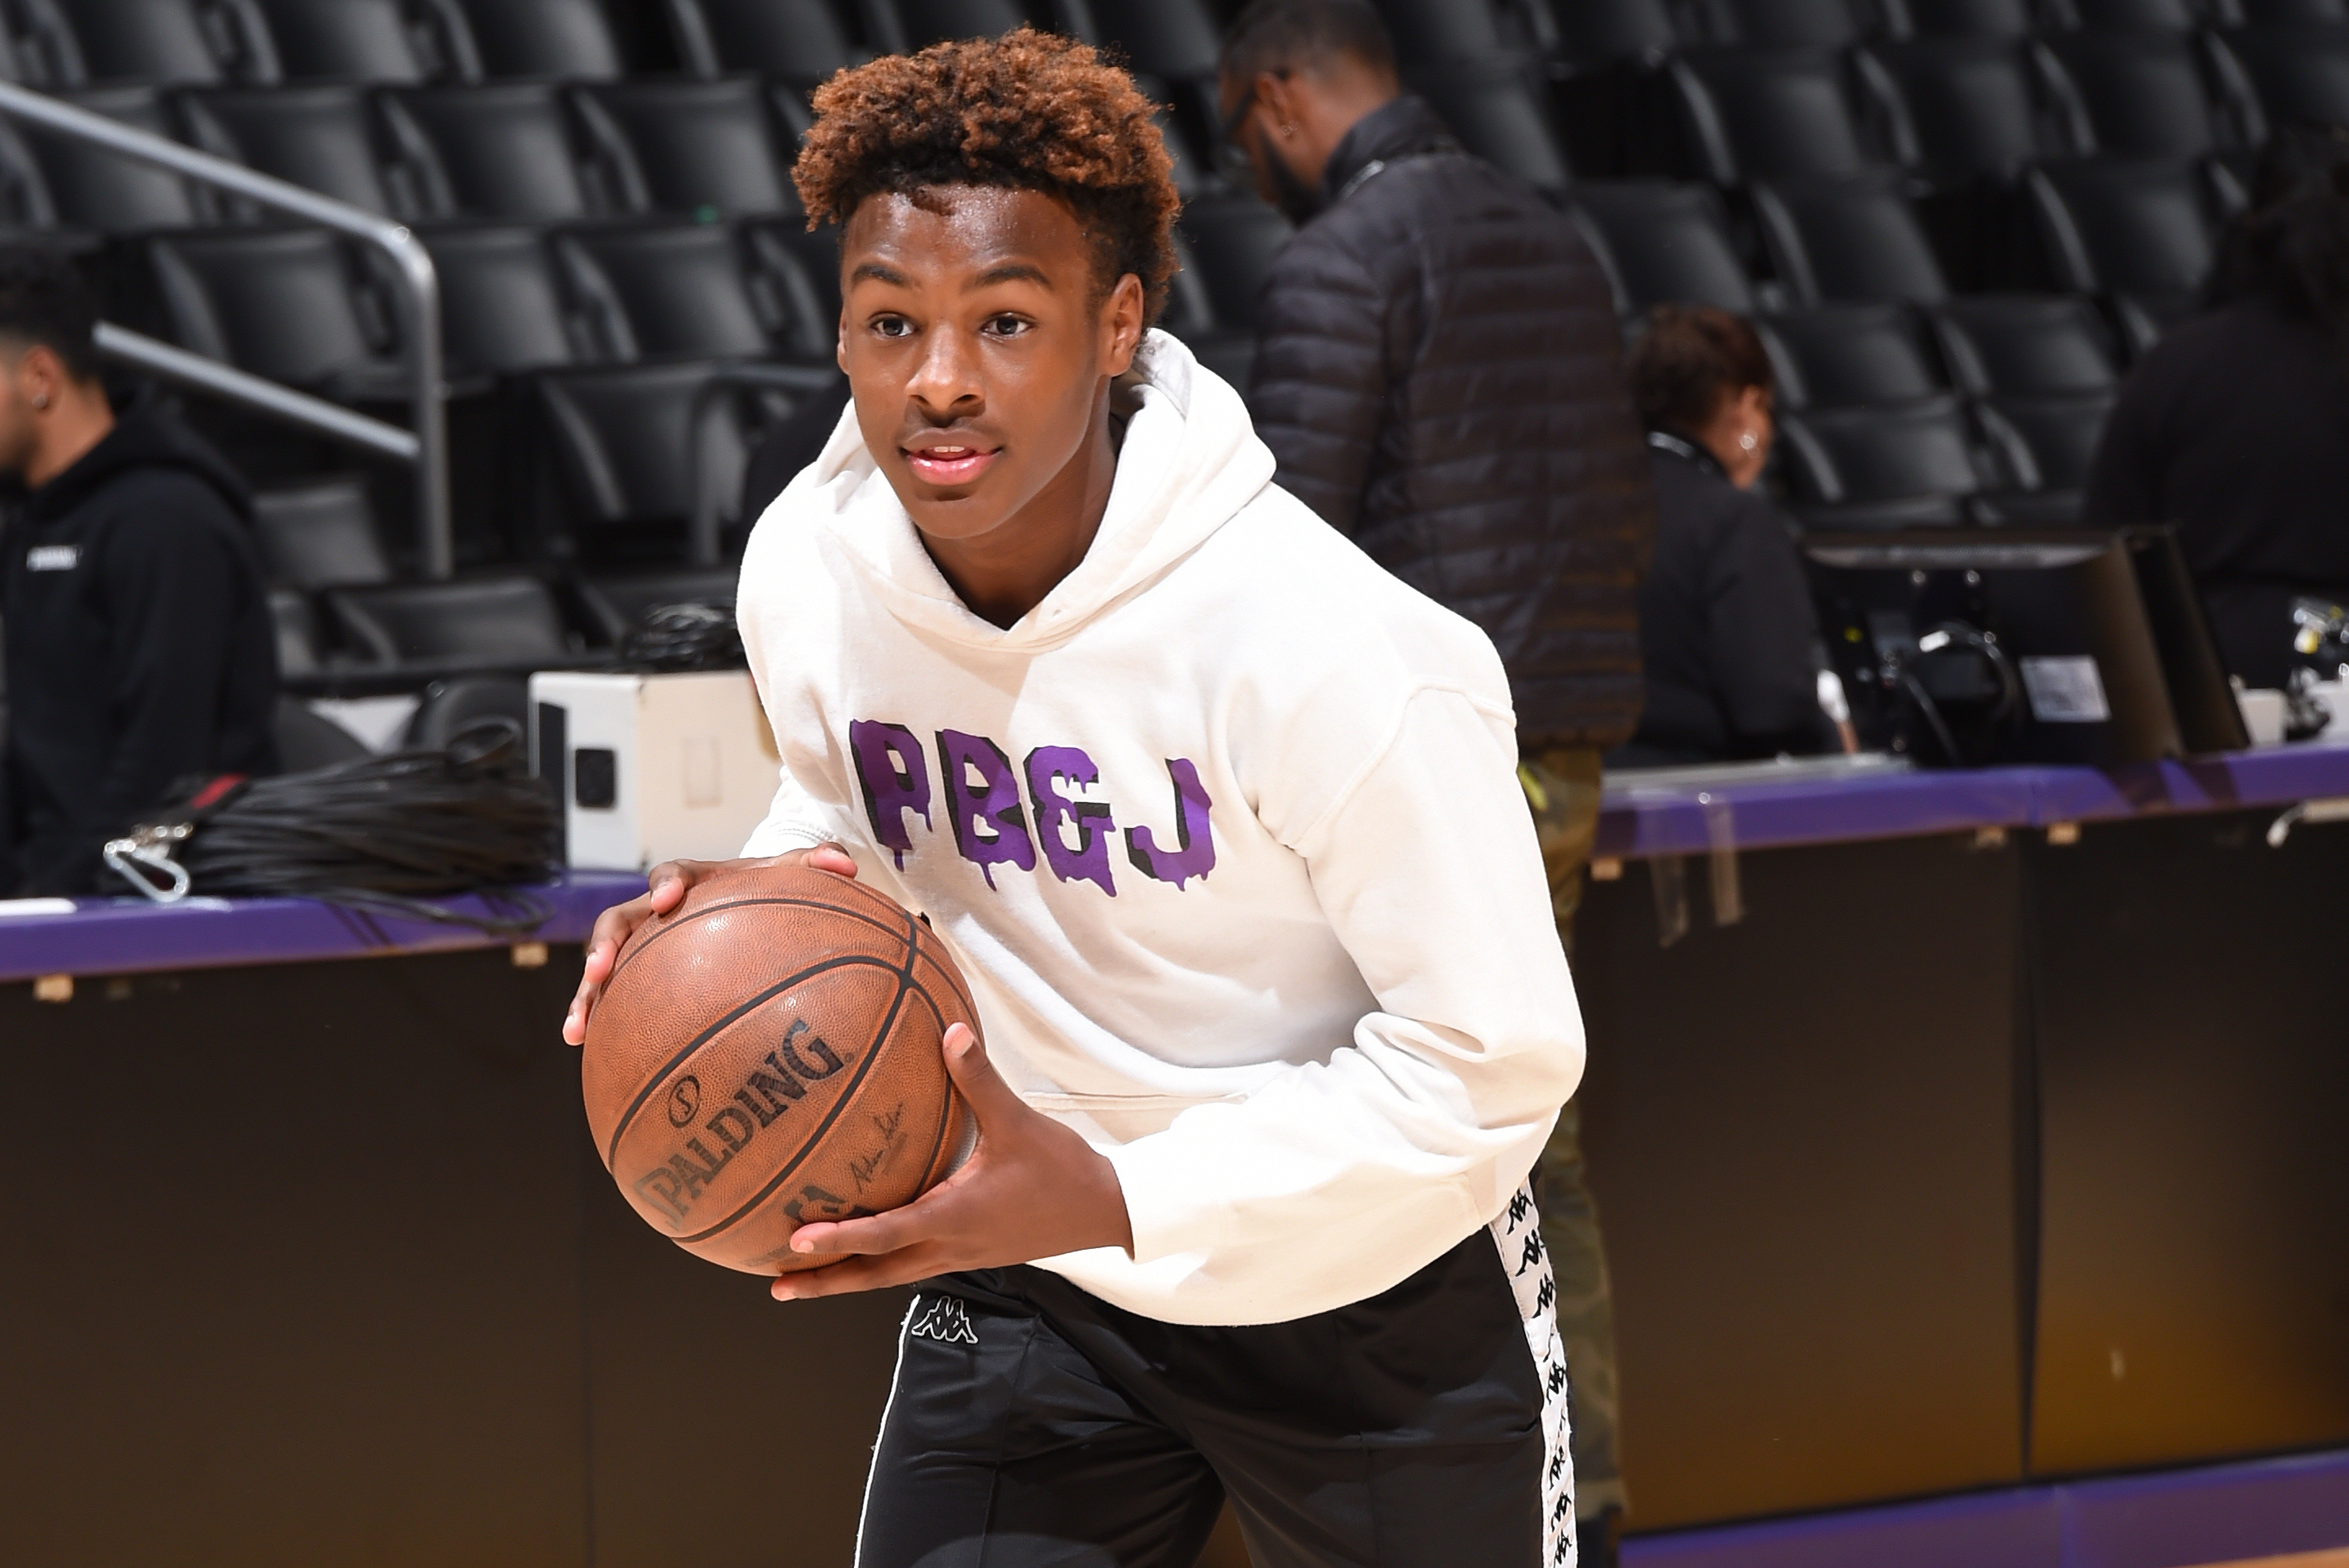 promo code 5ff83 da409 Highlights: Bronny James Leads Blue Chips to Easy Win at LA ...